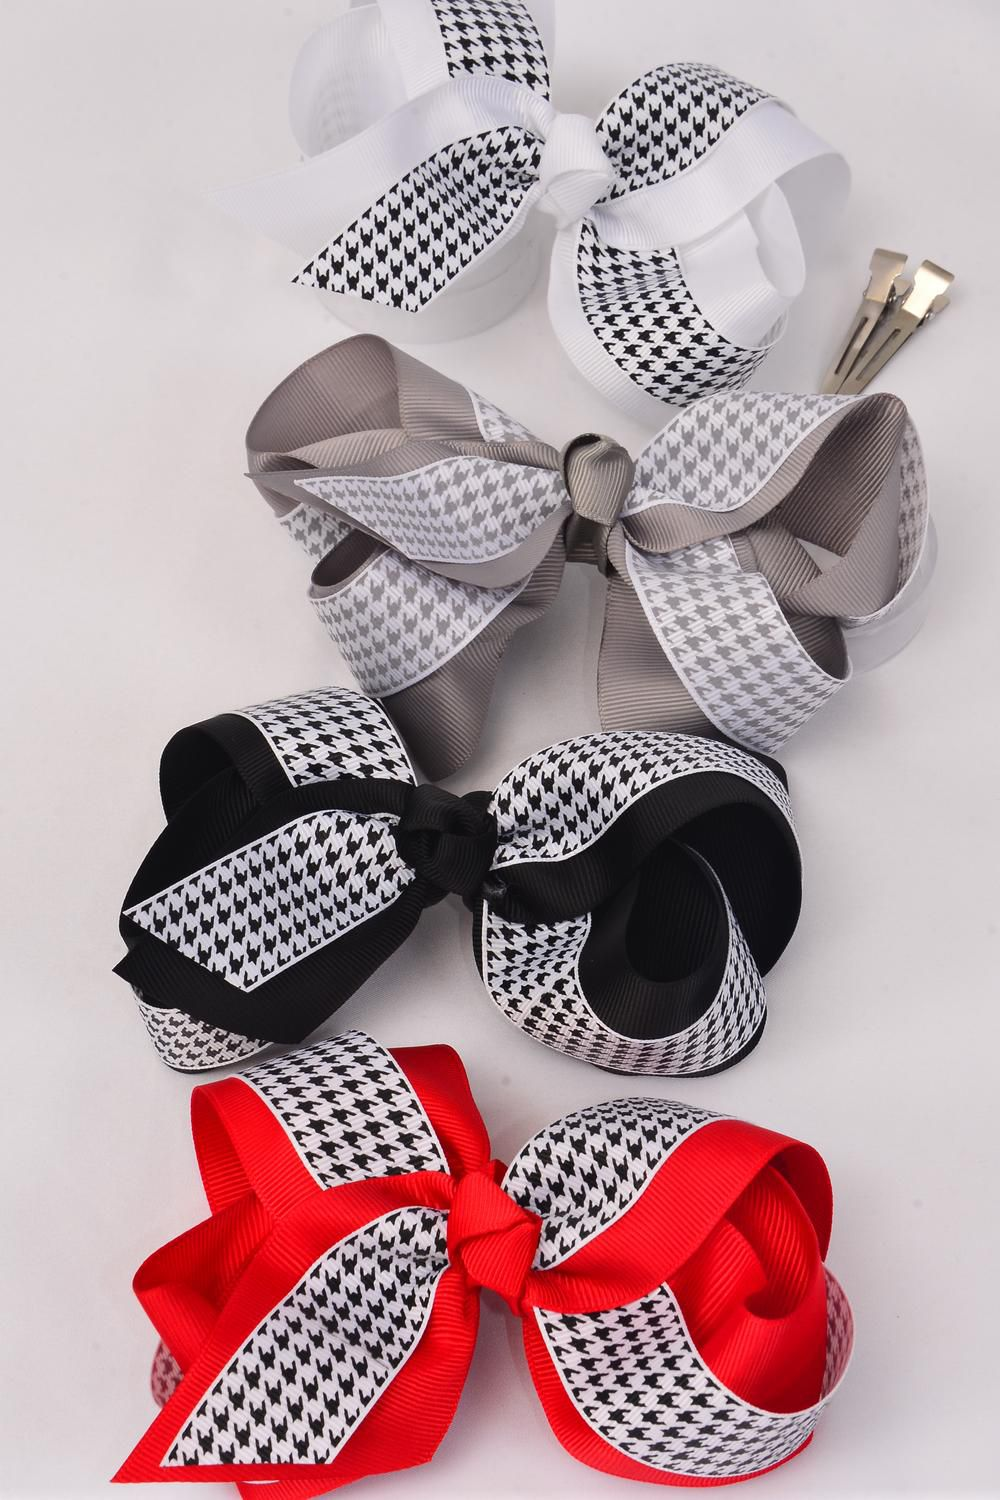 "Hair Bow Jumbo Houndtooth Double Layer Grosgrain Bow-tie/DZ **Alligator Clip** Size-6""x 5"" Wide,3 Black,3 White,3 Red,3 Gray Mix,Clip Strip & UPC Code"